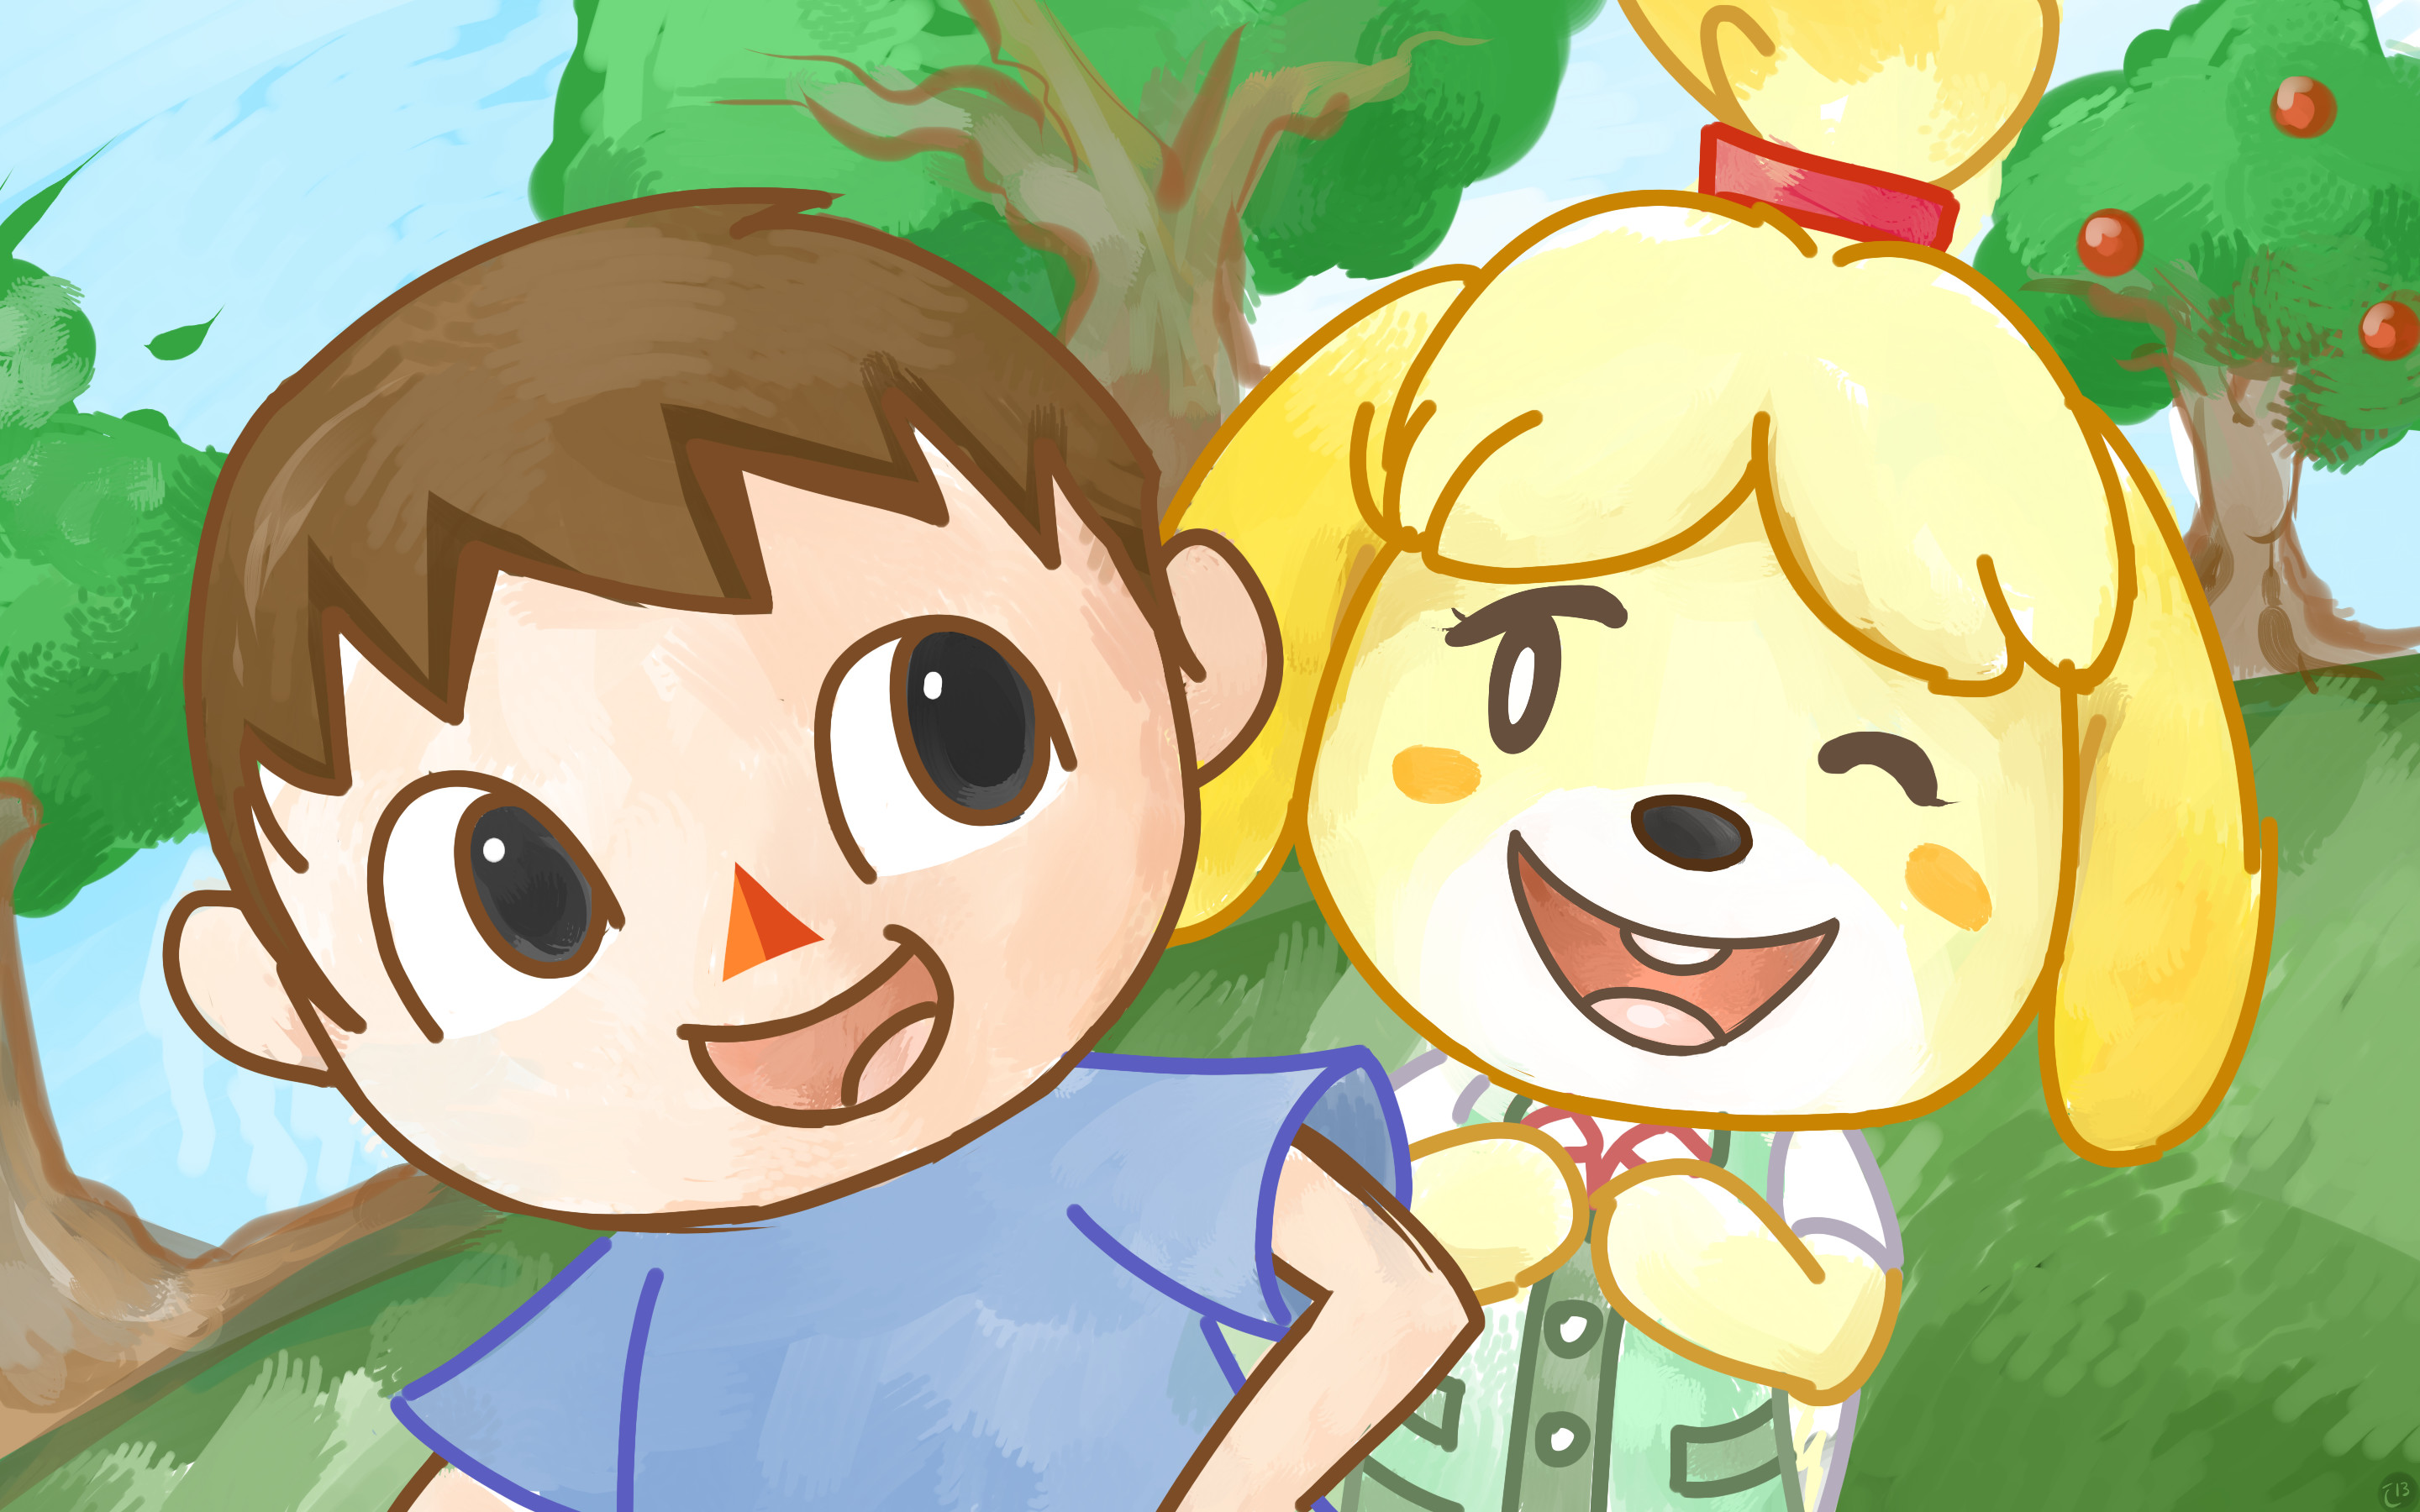 Res: 2880x1800, Isabelle (Animal Crossing) images 9c0b45aee3c052ce0cbab3424ae47512 d69tvuk  HD wallpaper and background photos